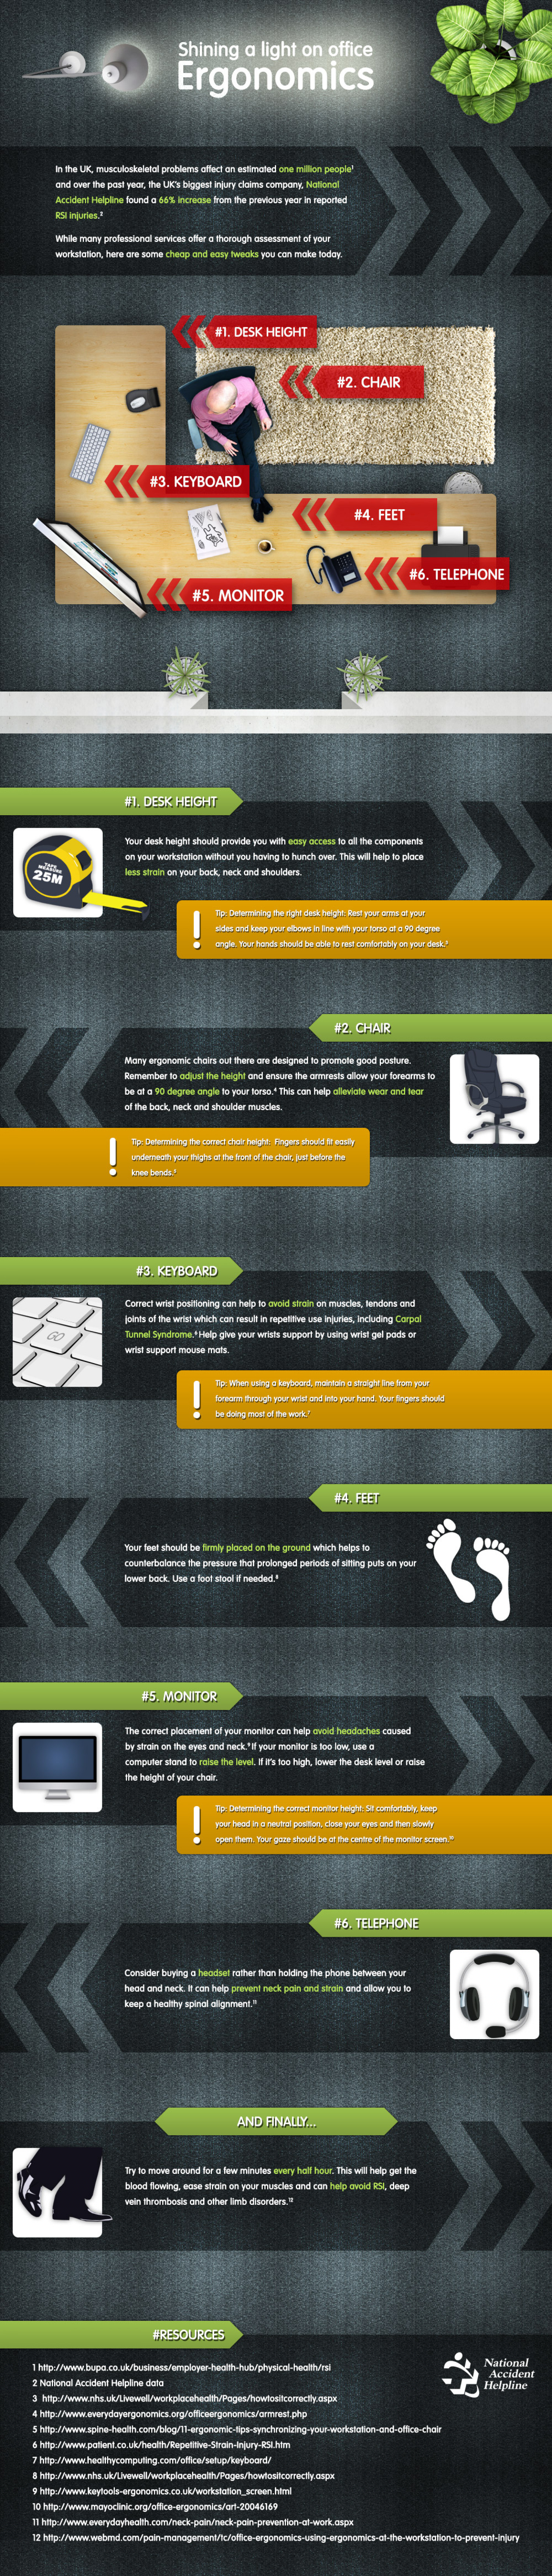 Shining a light on office ergonomics  Infographic